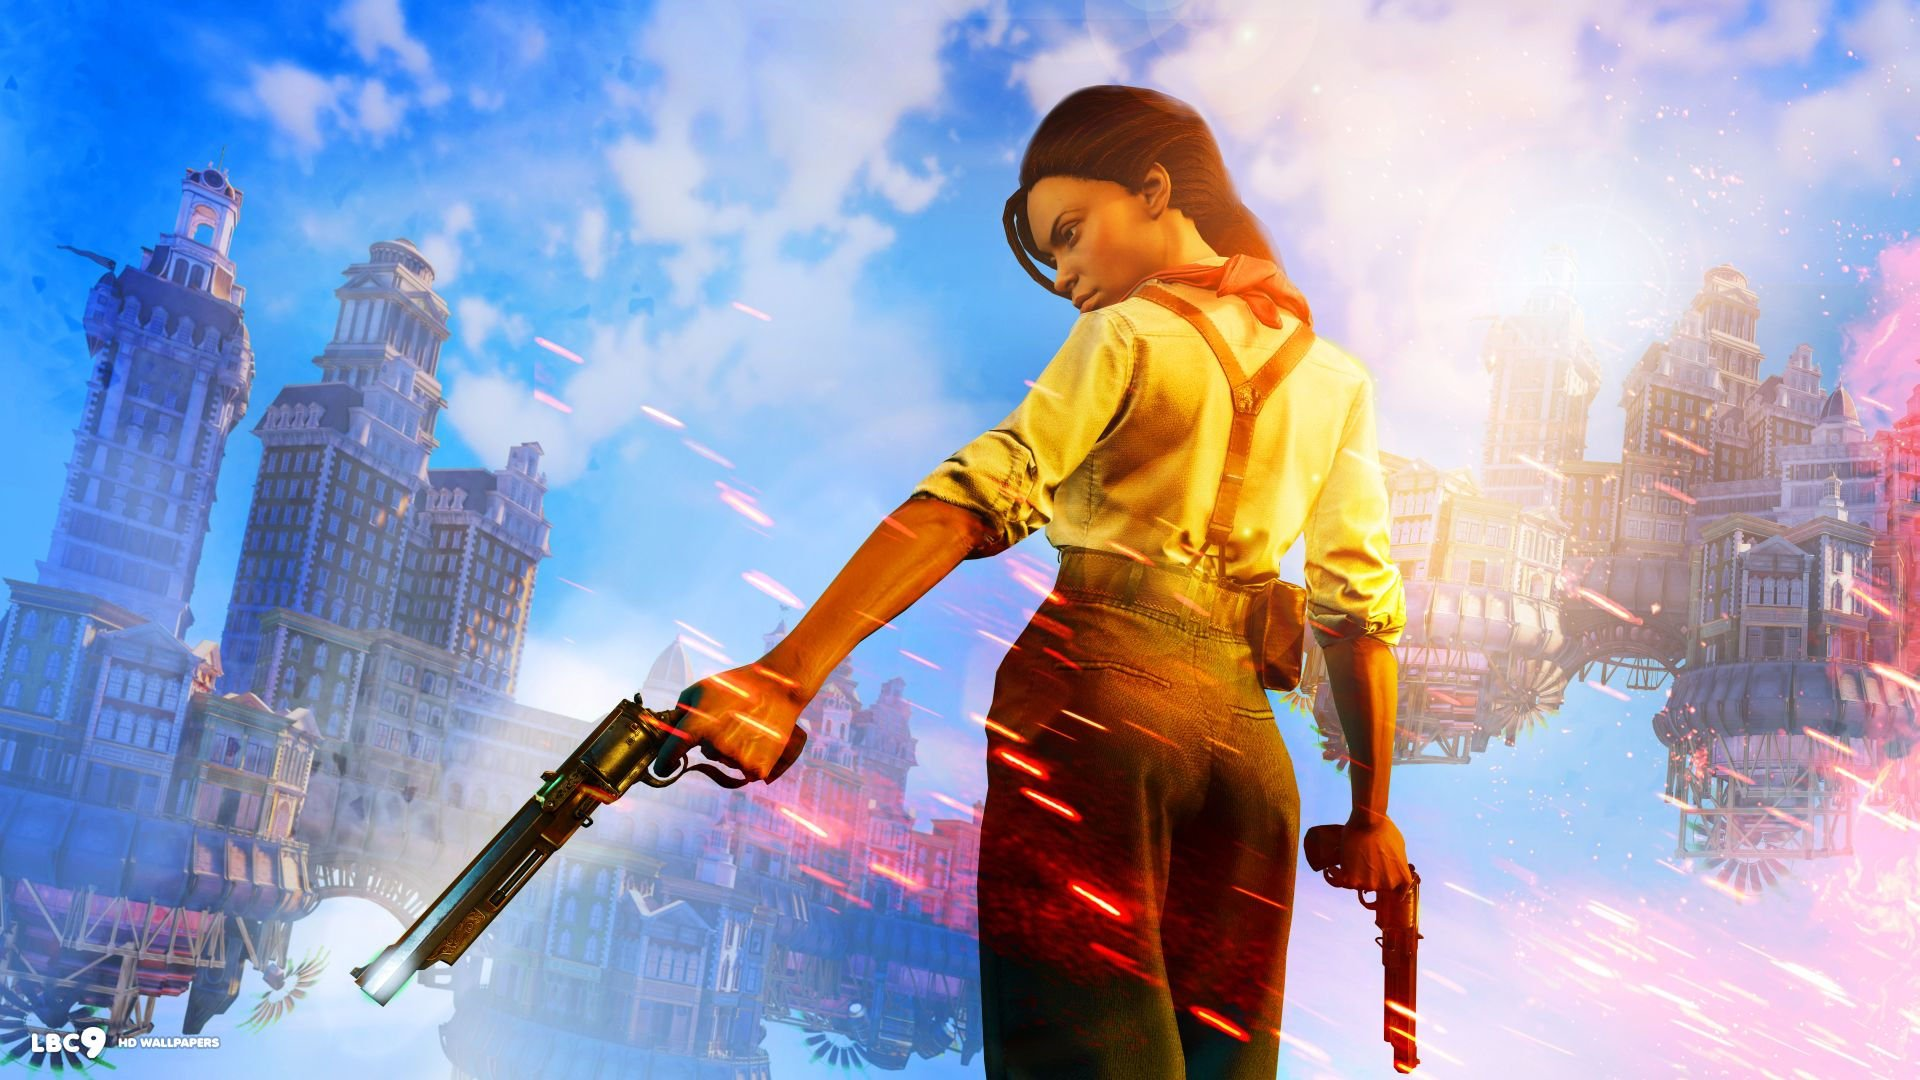 Bioshock Infinite HD Wallpaper 13   1920 X 1080 stmednet 1920x1080